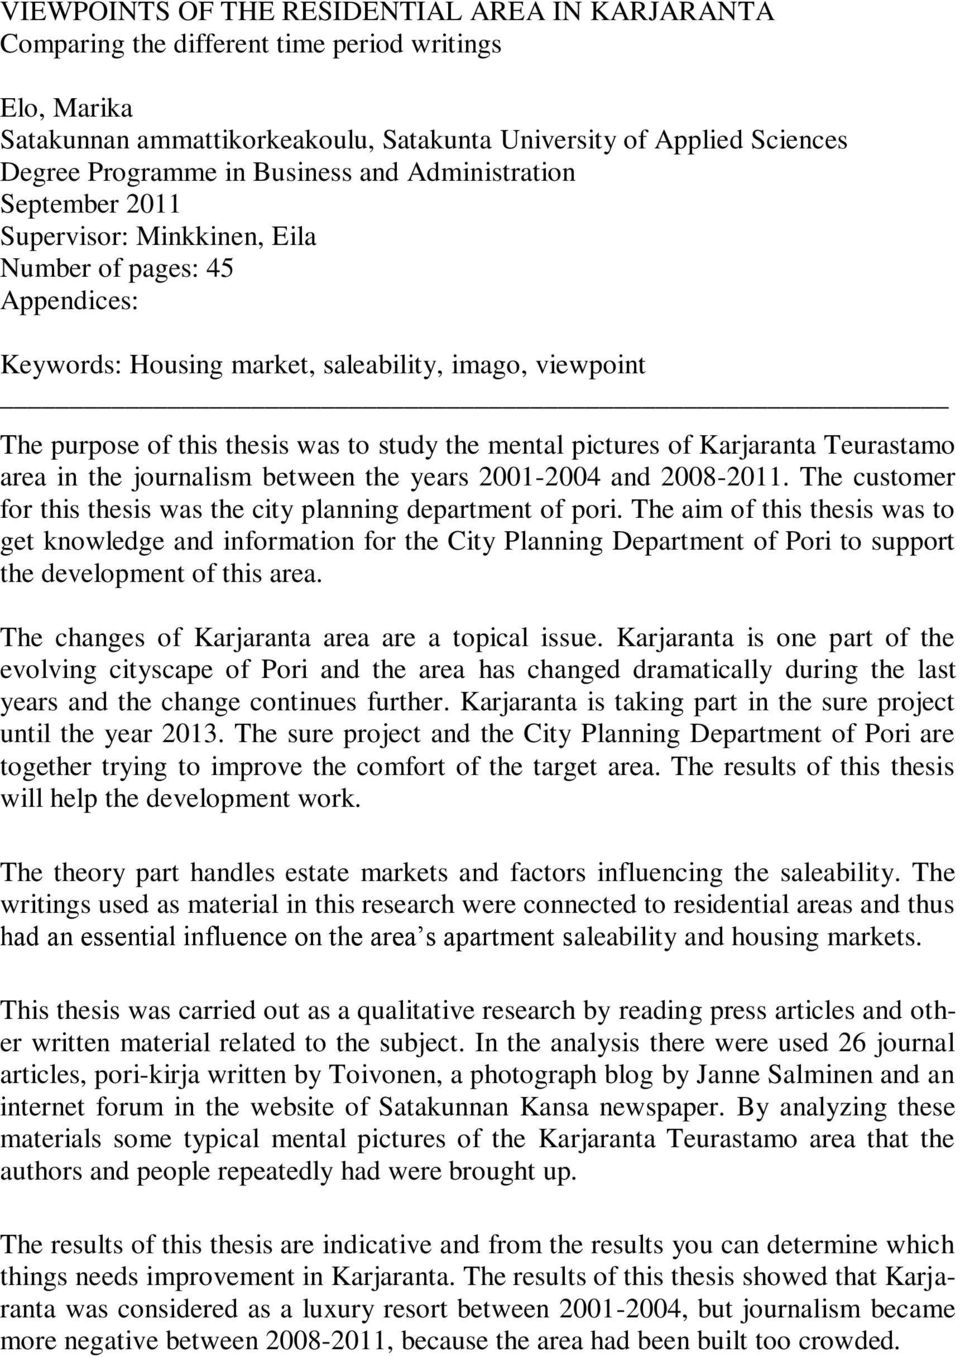 the mental pictures of Karjaranta Teurastamo area in the journalism between the years 2001-2004 and 2008-2011. The customer for this thesis was the city planning department of pori.